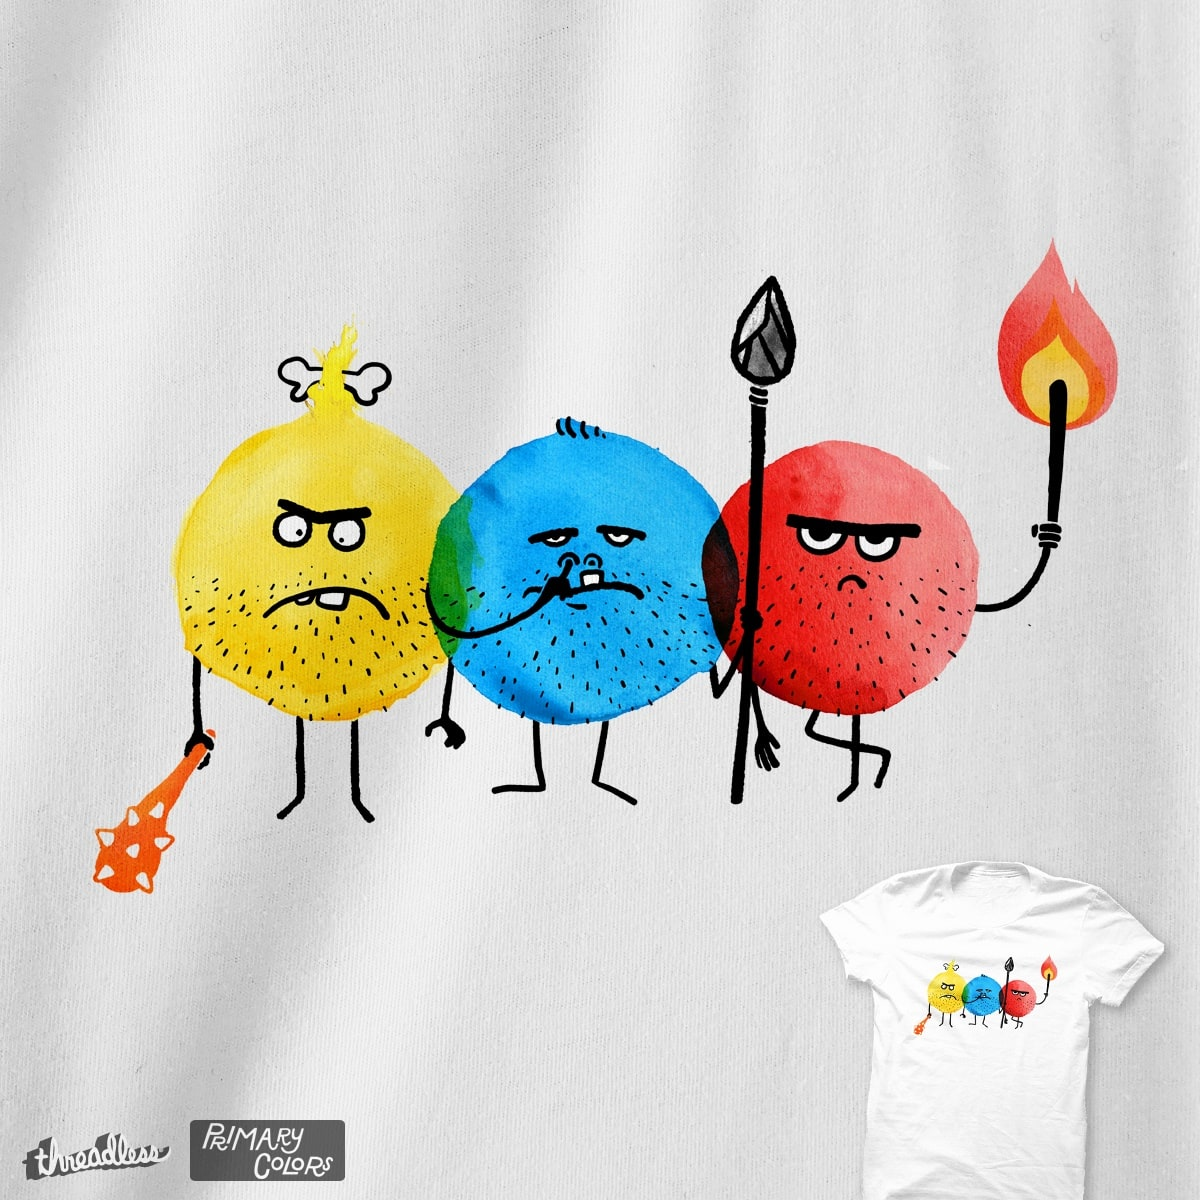 Primary Colors by v_calahan on Threadless